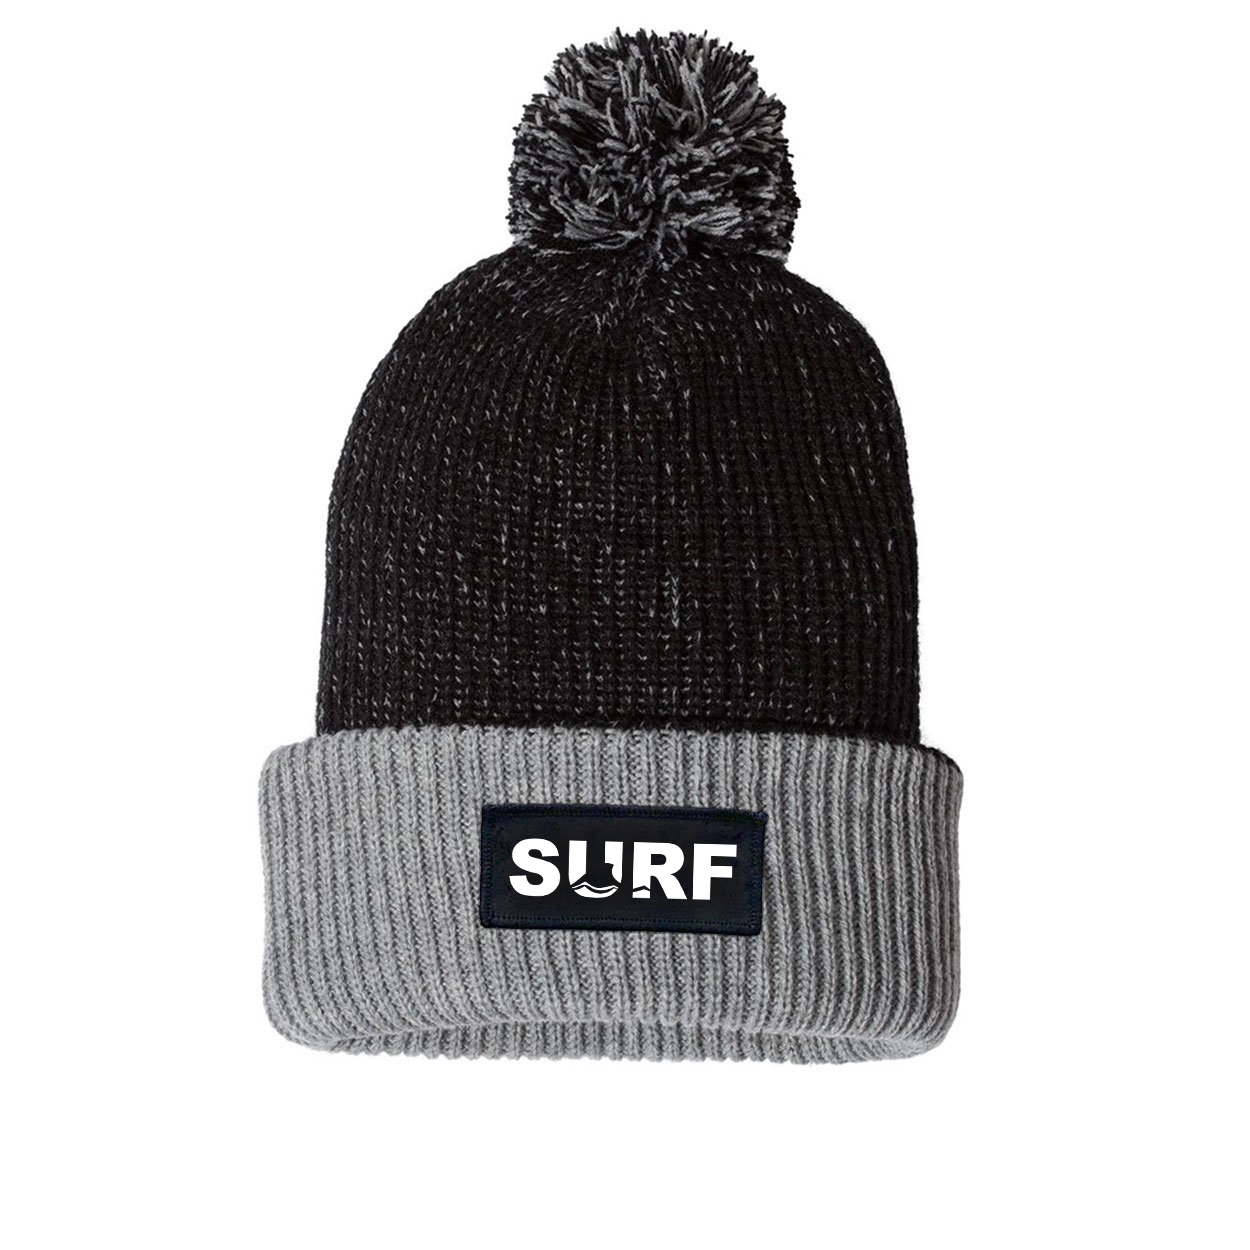 Surf Wave Logo Night Out Woven Patch Roll Up Pom Knit Beanie Black/Gray (White Logo)